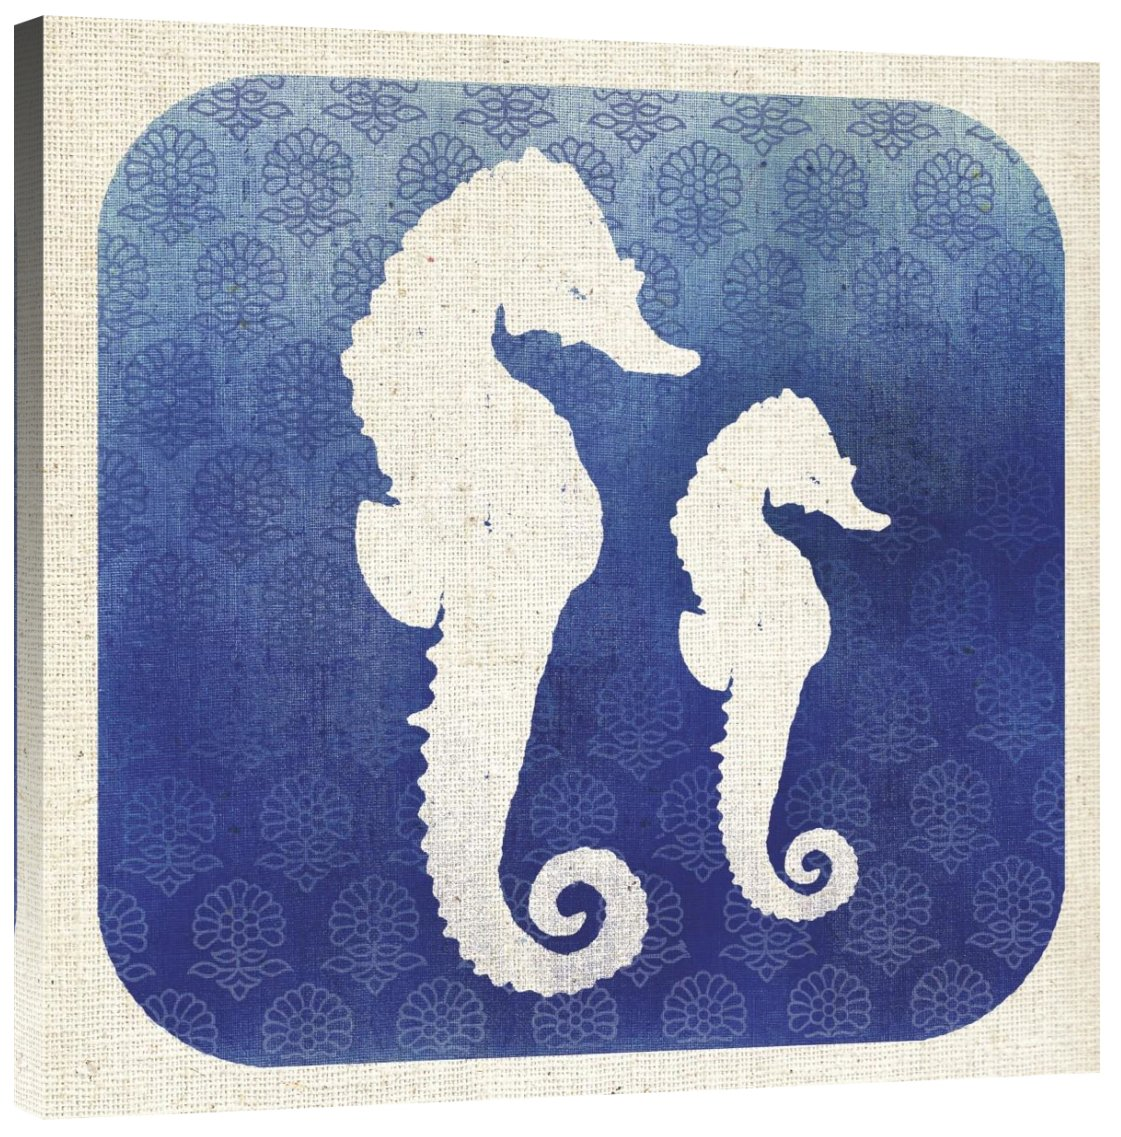 Global Gallery Studio Mousseau Watermark Seahorse Giclee Stretched Canvas Artwork 30 x 30